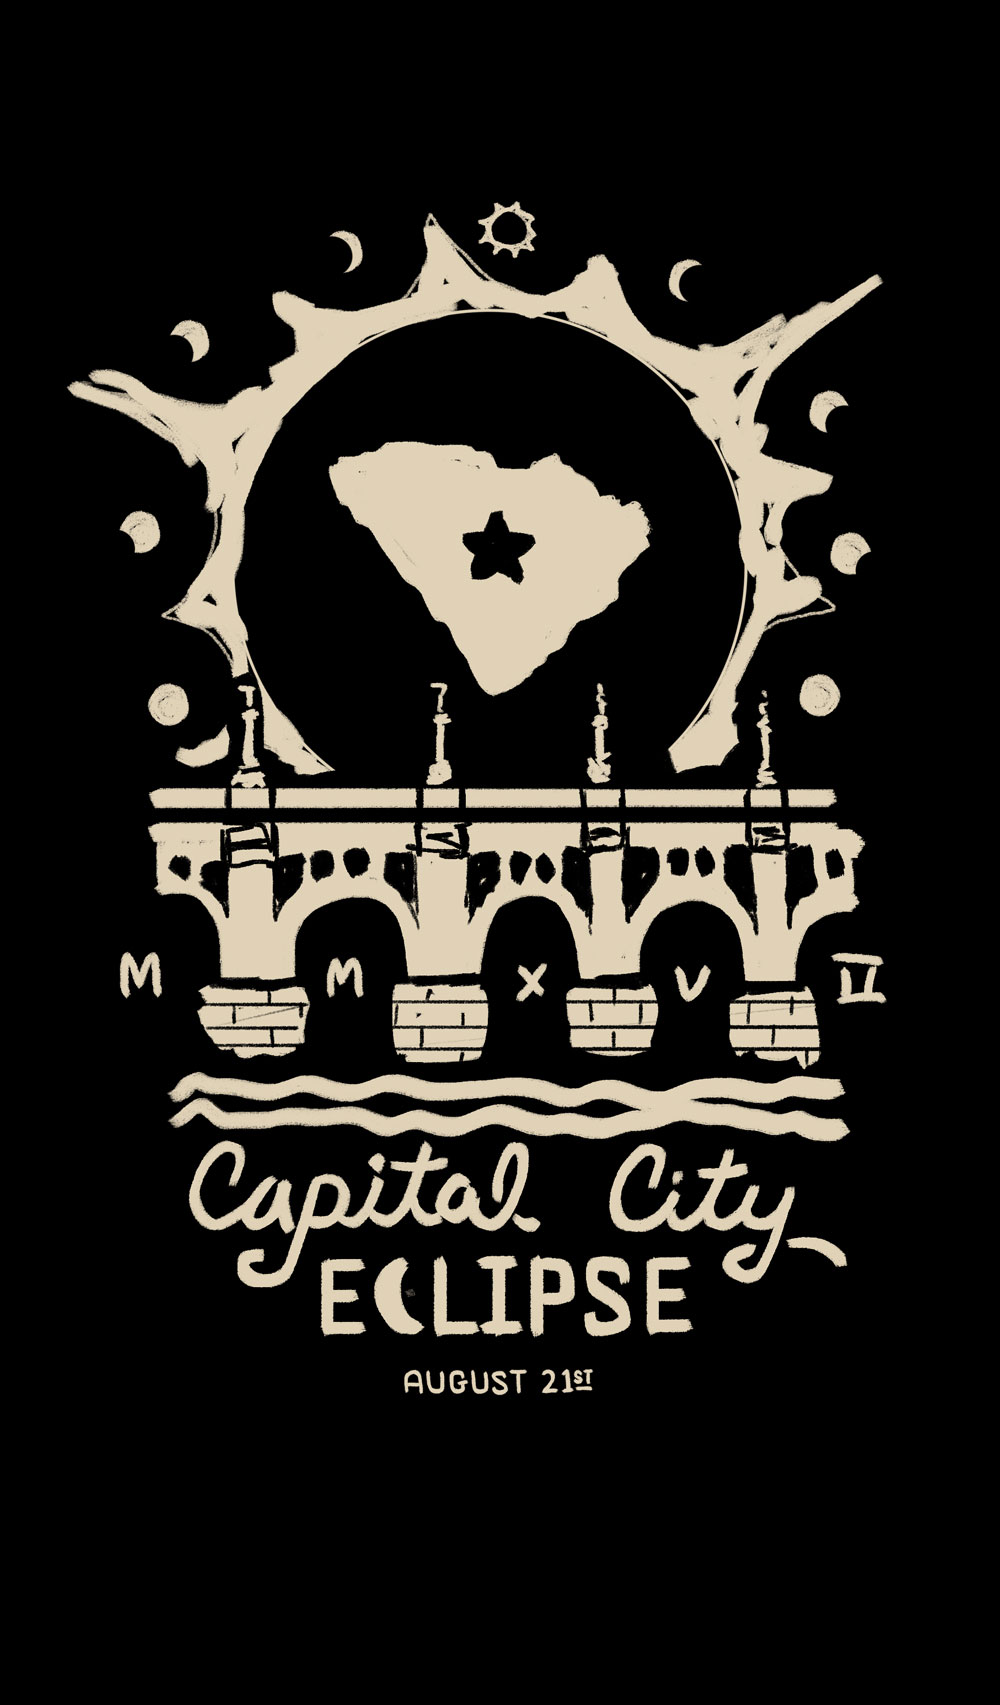 3. This is another variation of the bridge concept, but with the type below, the state in the eclipse, and the phases around the eclipse.